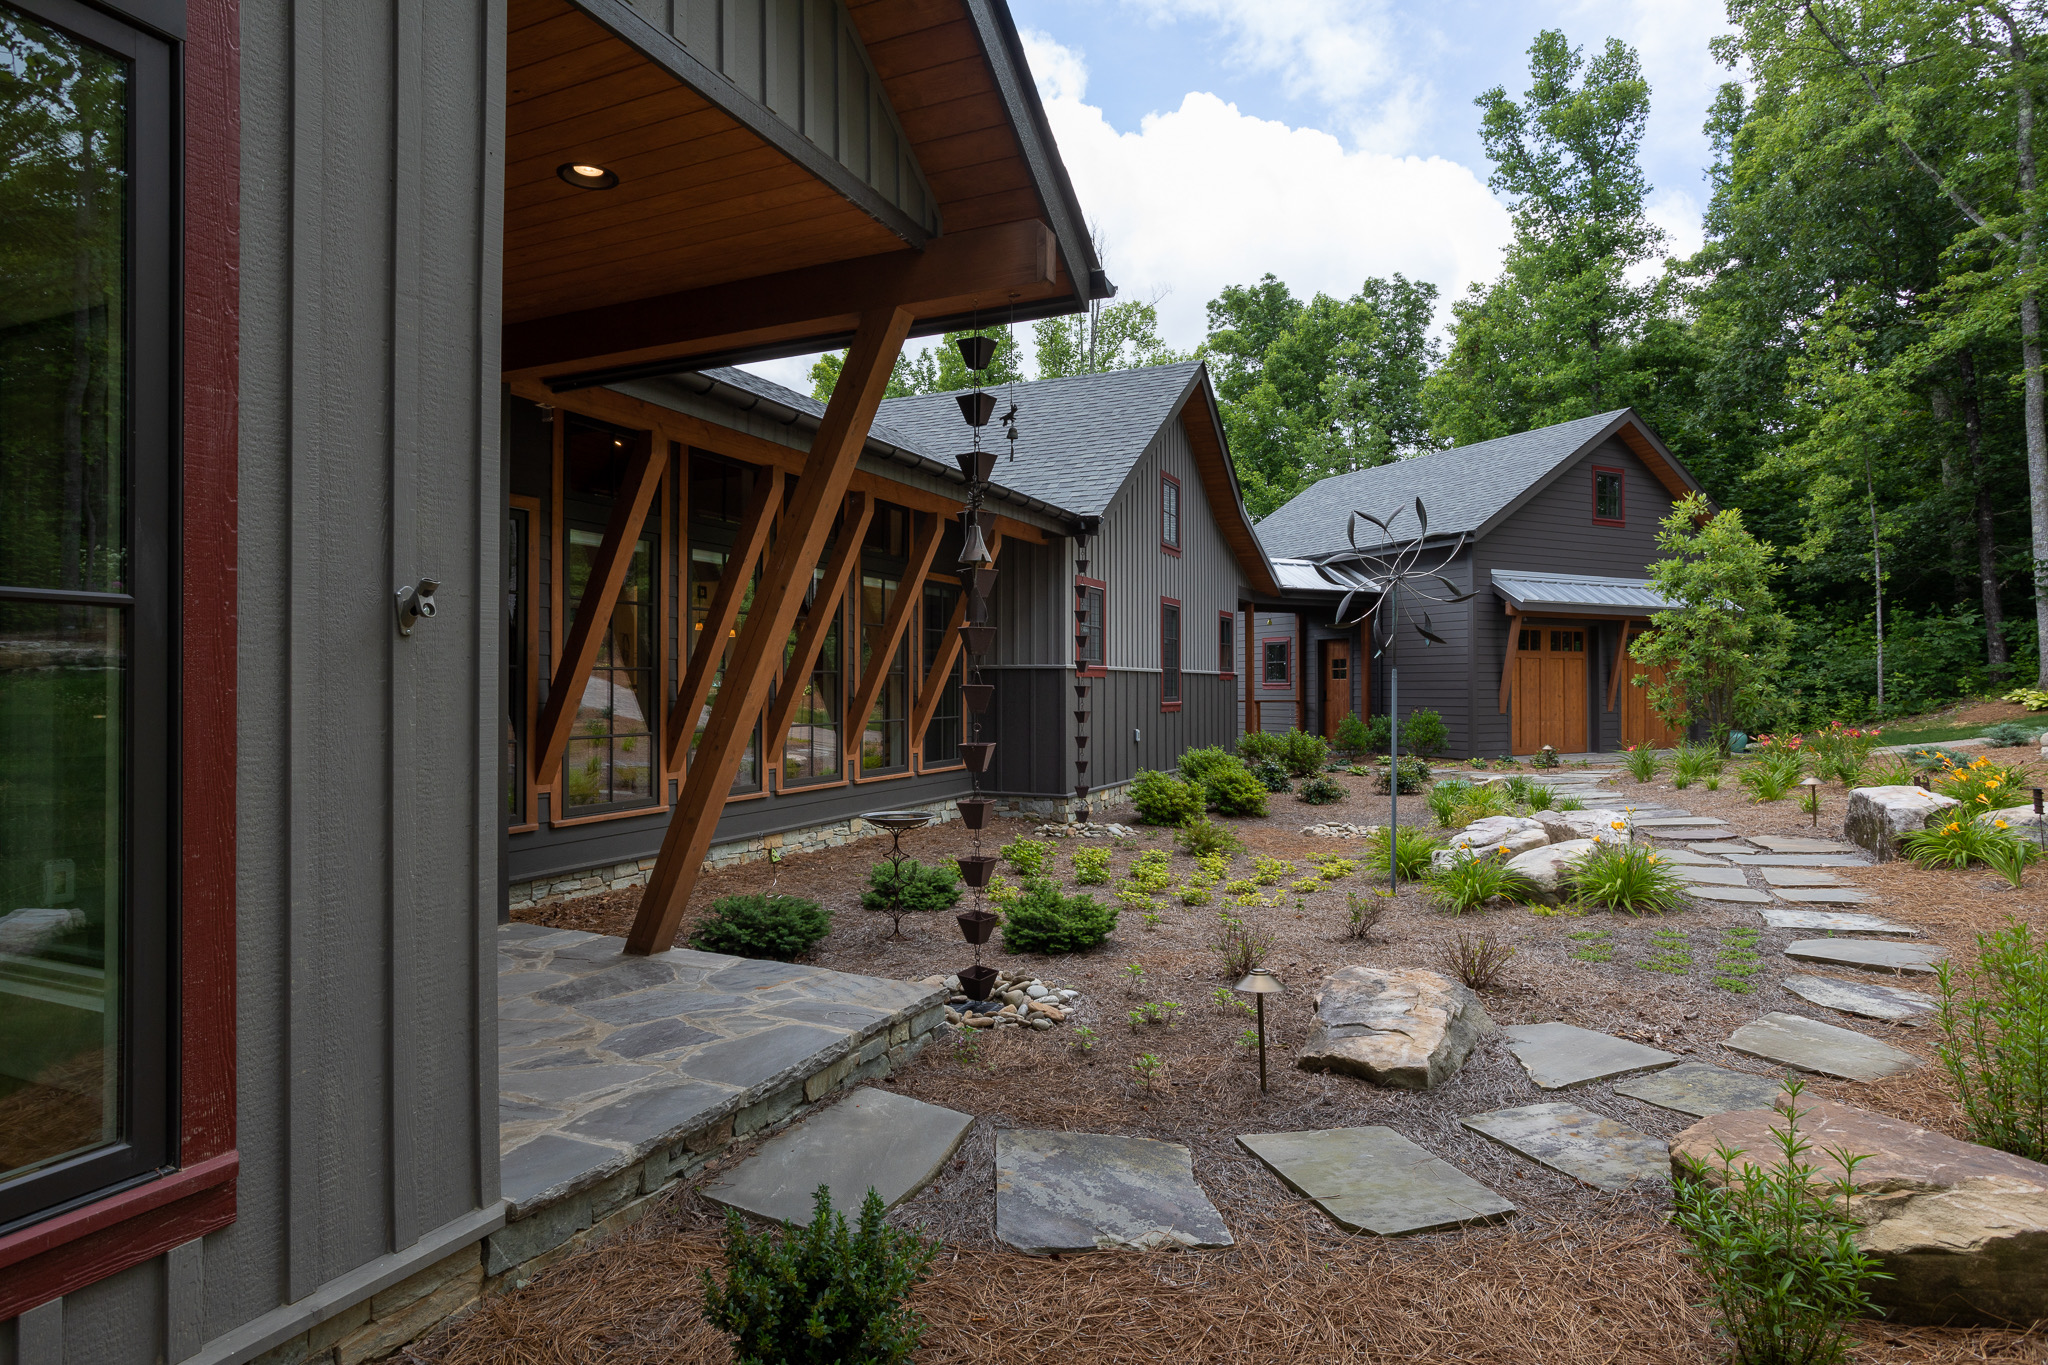 Front porch entry of modern style mountain home with wood beam architectural elements